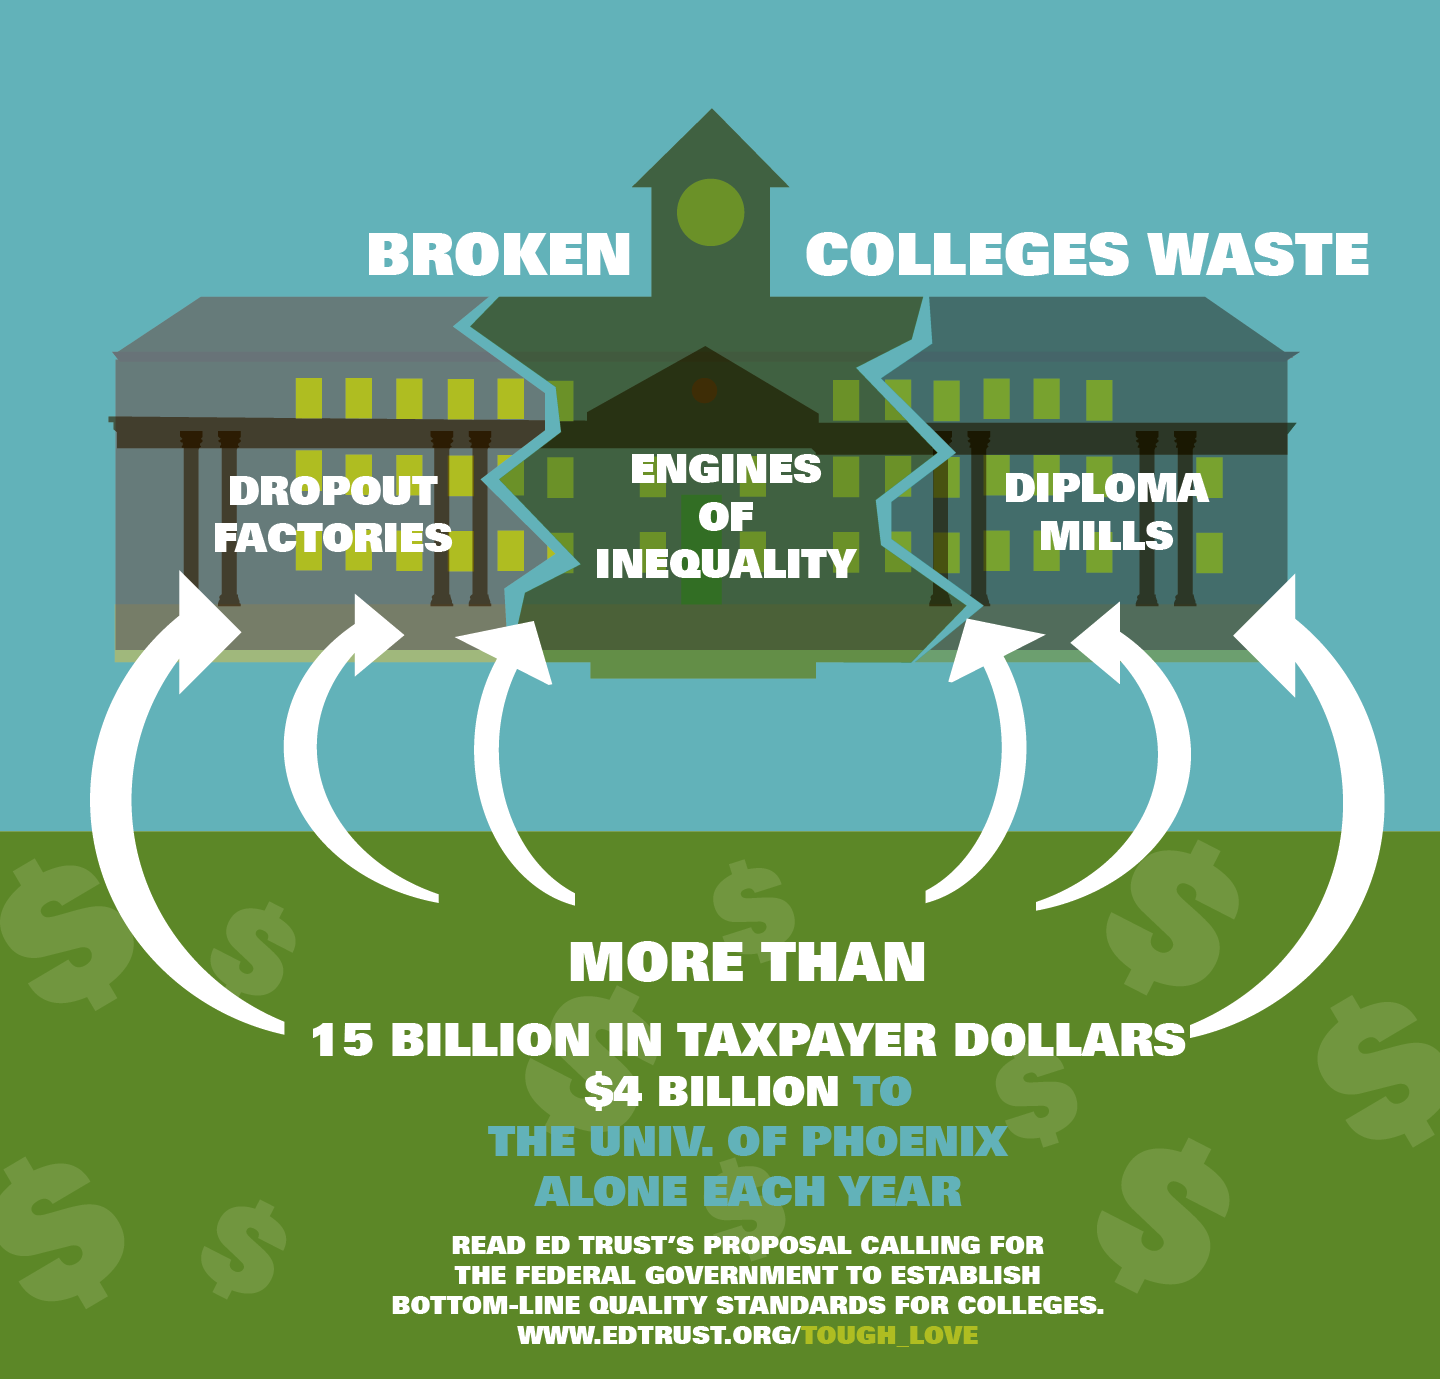 Broken Colleges Waste More Than 15 Billion In Taxpayer